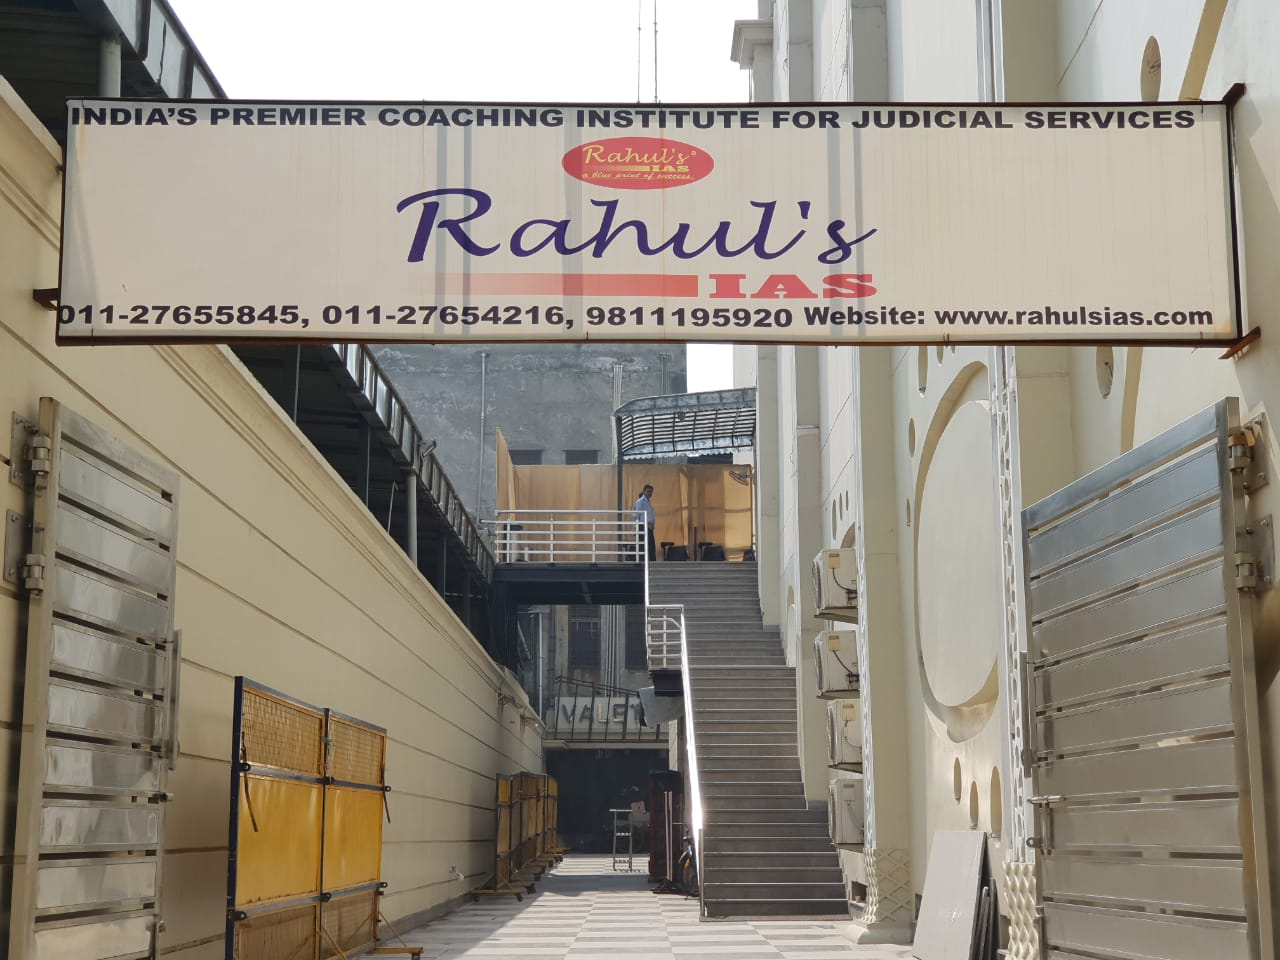 NEW BUILDING OF RAHUL'S IAS.